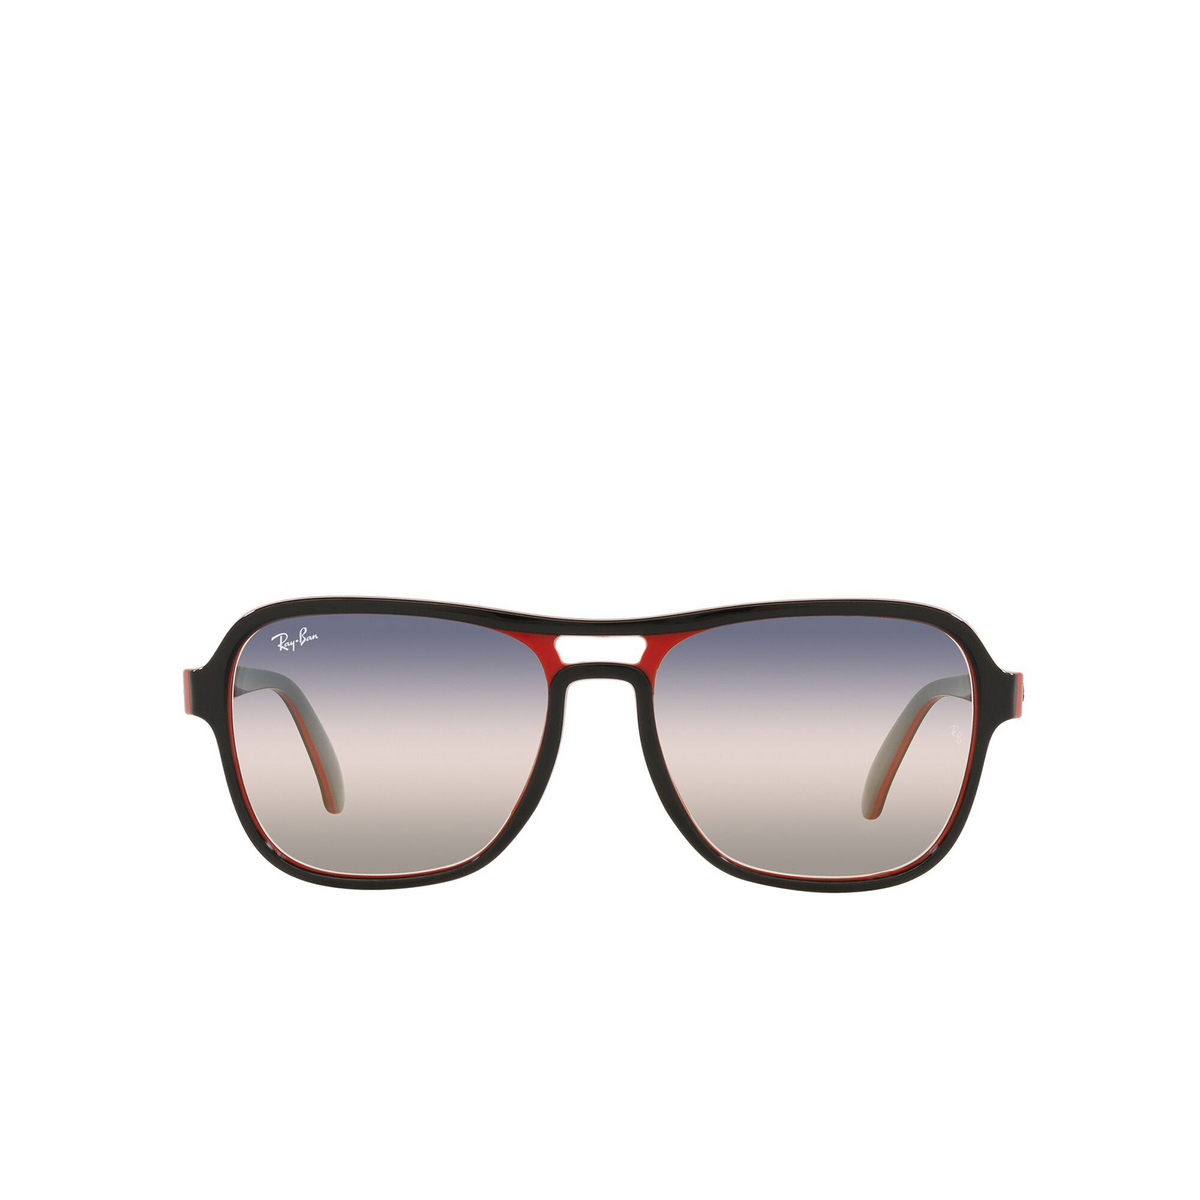 Ray-Ban® Square Sunglasses: State Side RB4356 color Black Red Light Gray 6549GE - front view.